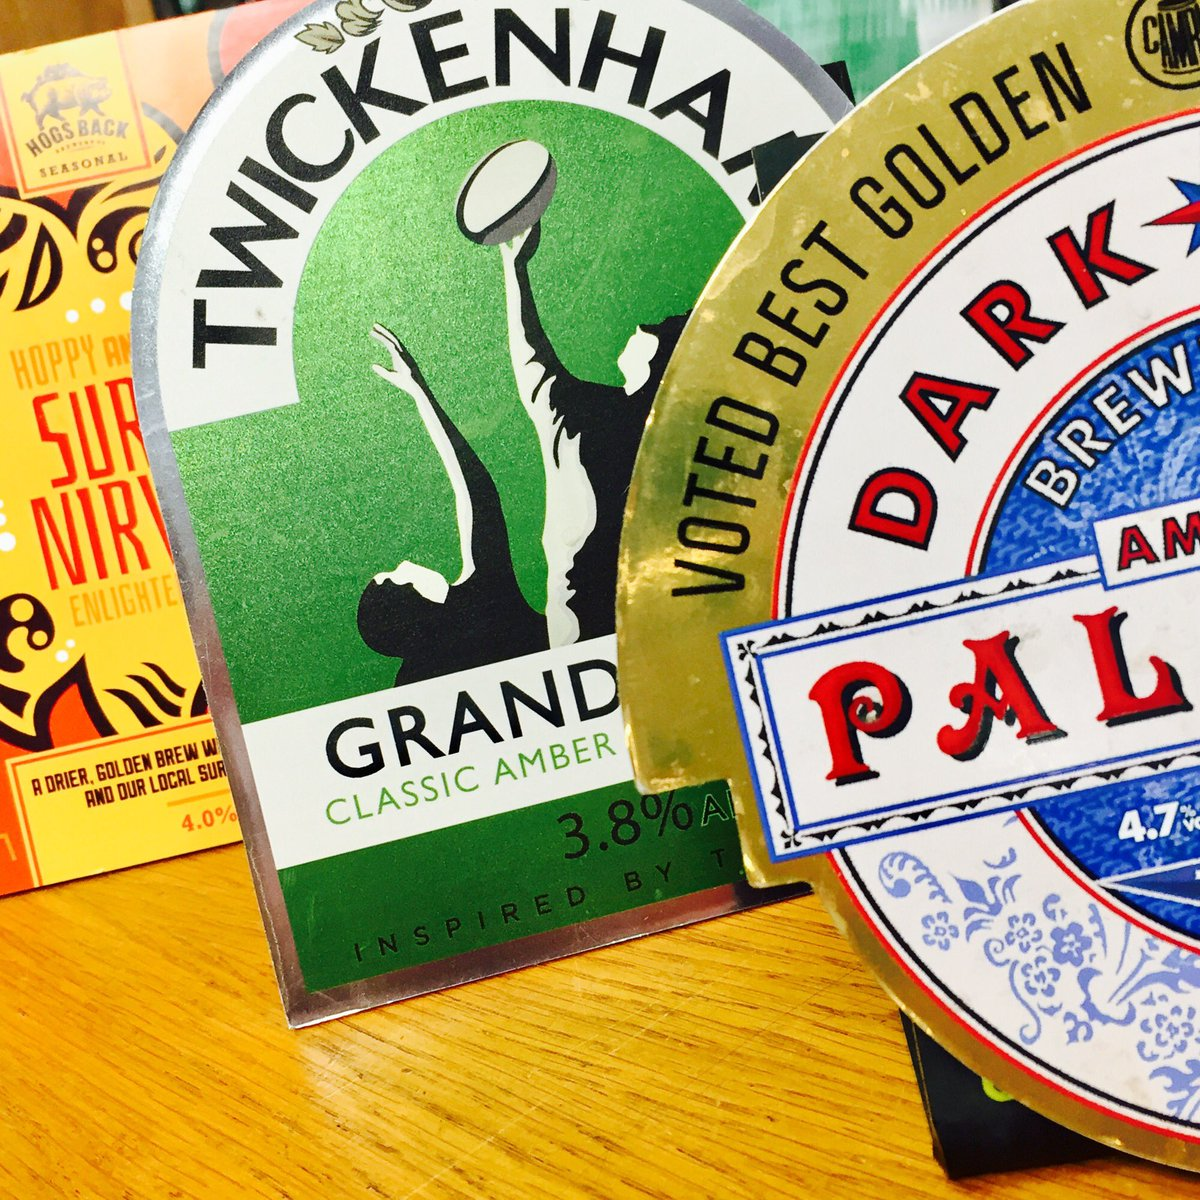 This is what we tapped today @HogsBackBrewery #nirvana @TwickenhamAles #grandstand @Darkstarbrewco #apa Come and get your BBQ beers now... <br>http://pic.twitter.com/Mo39doNPYH